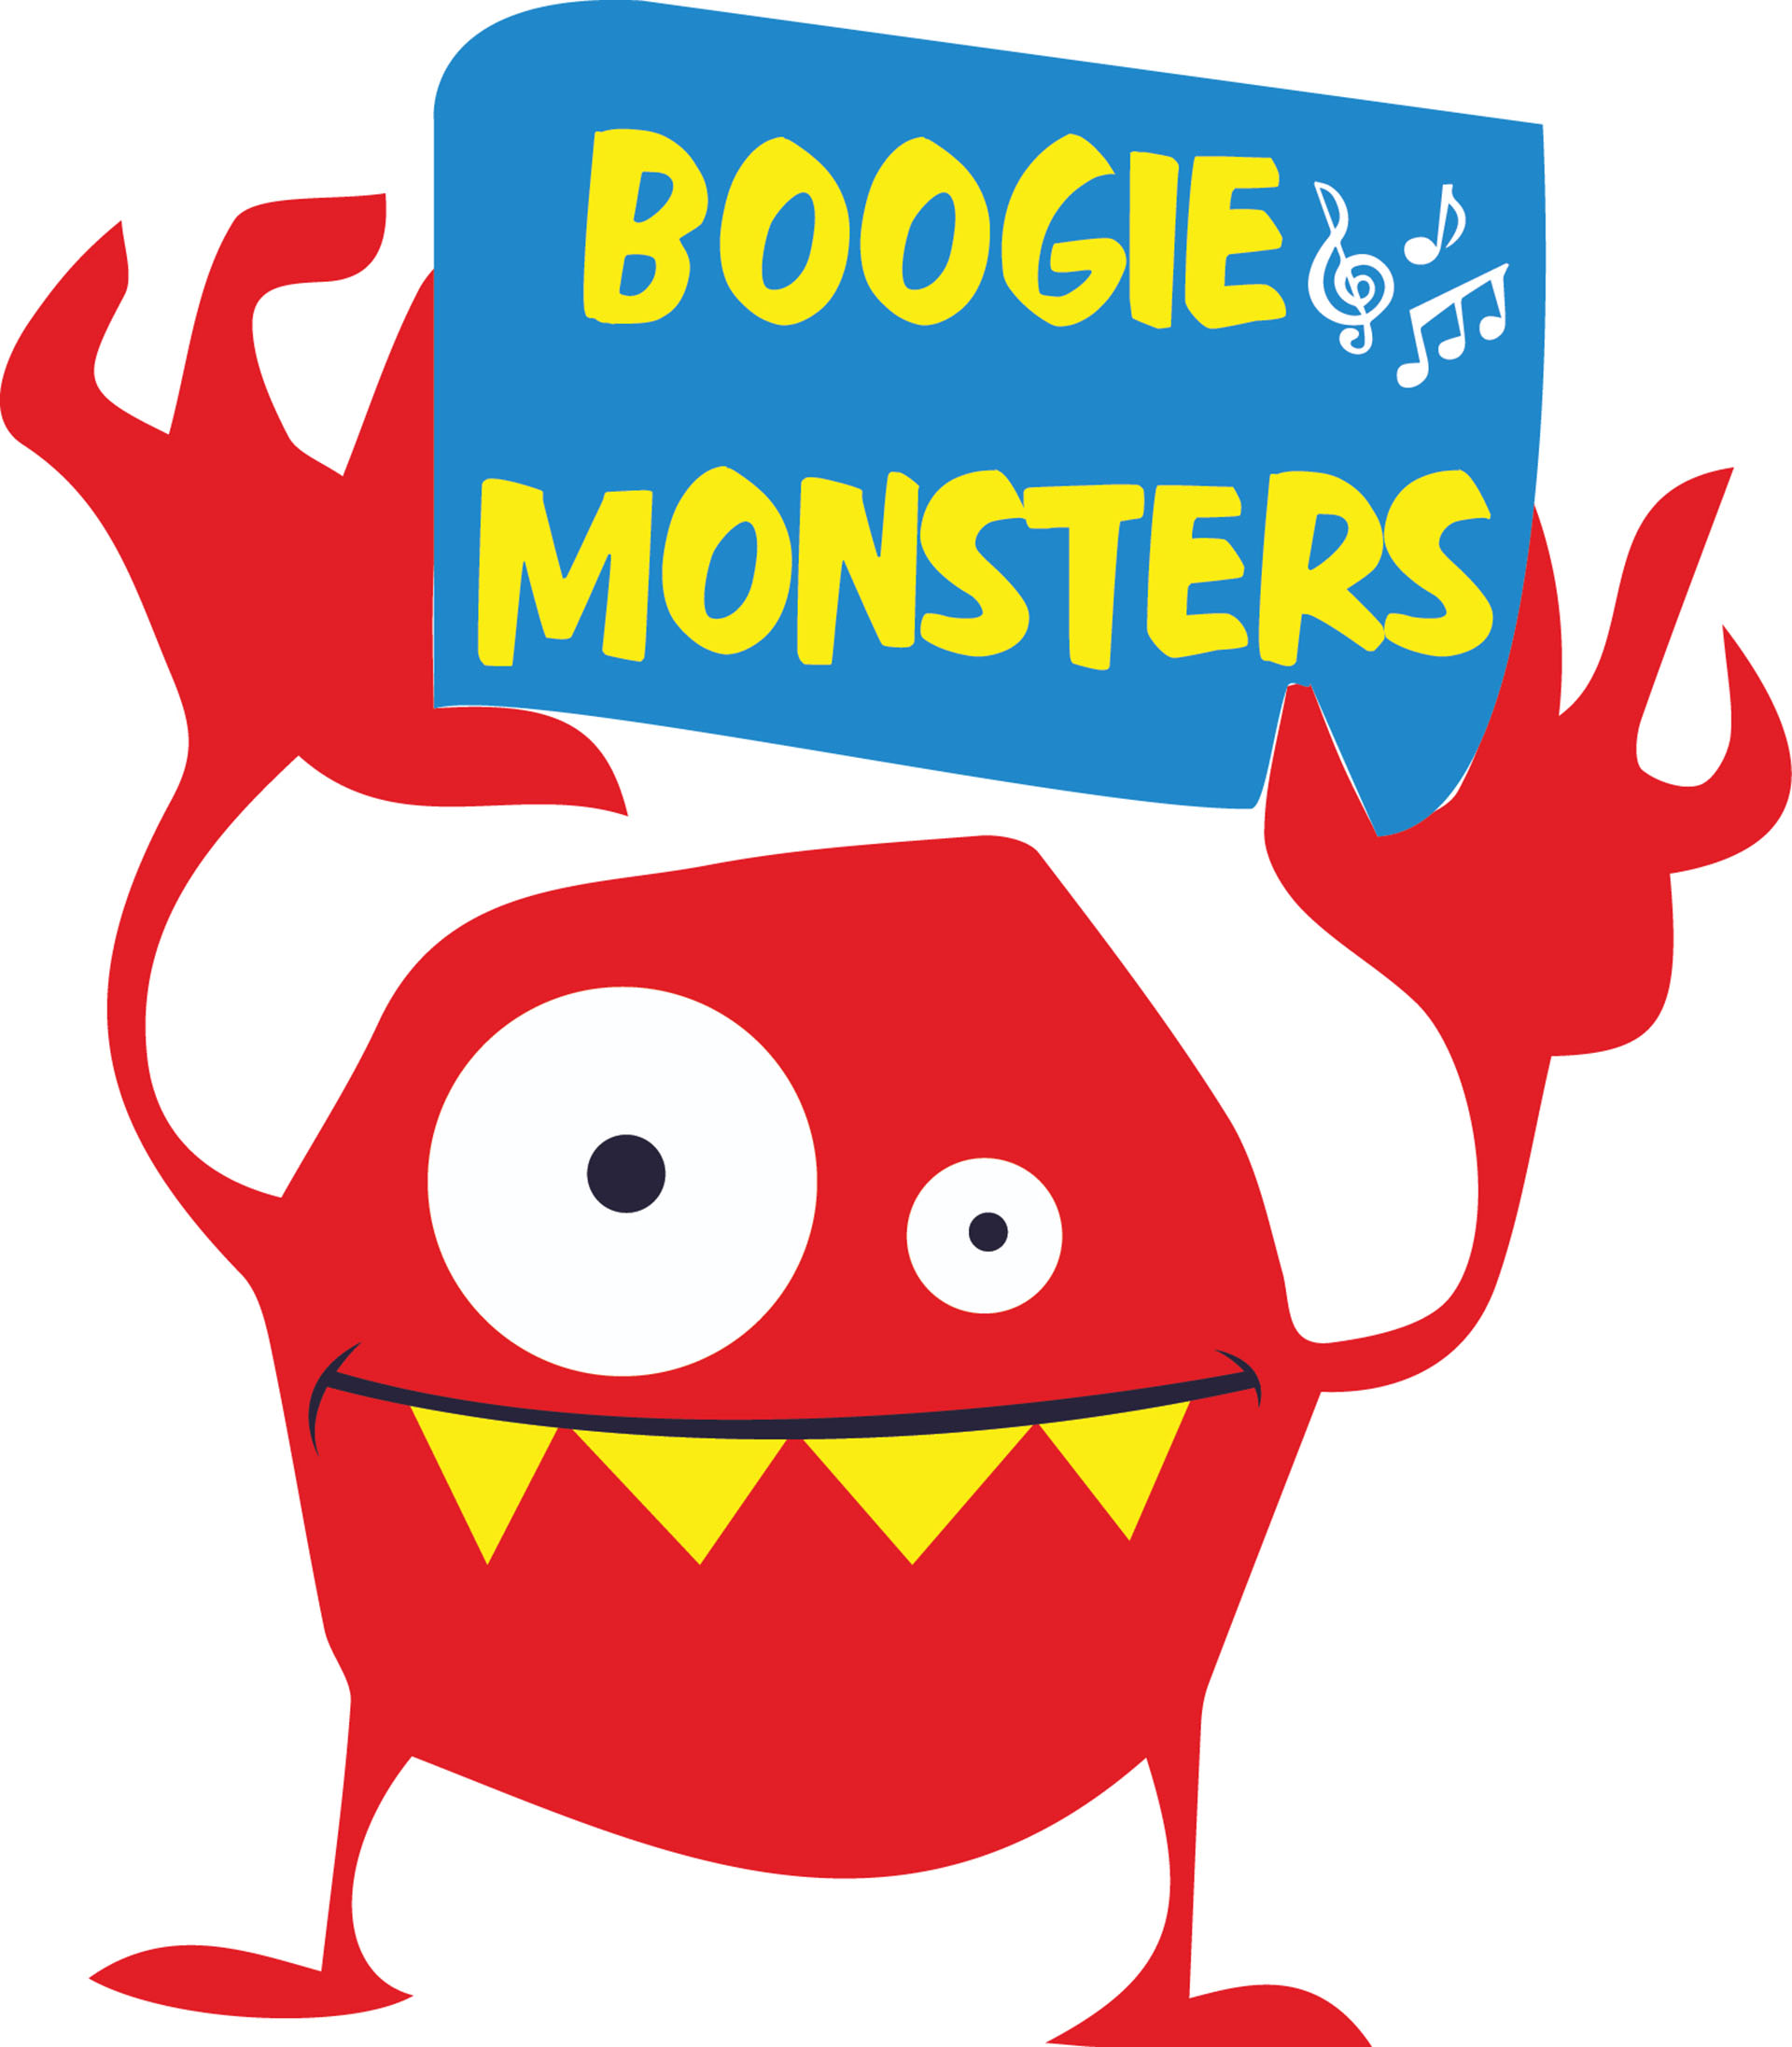 Boogie Monsters's logo